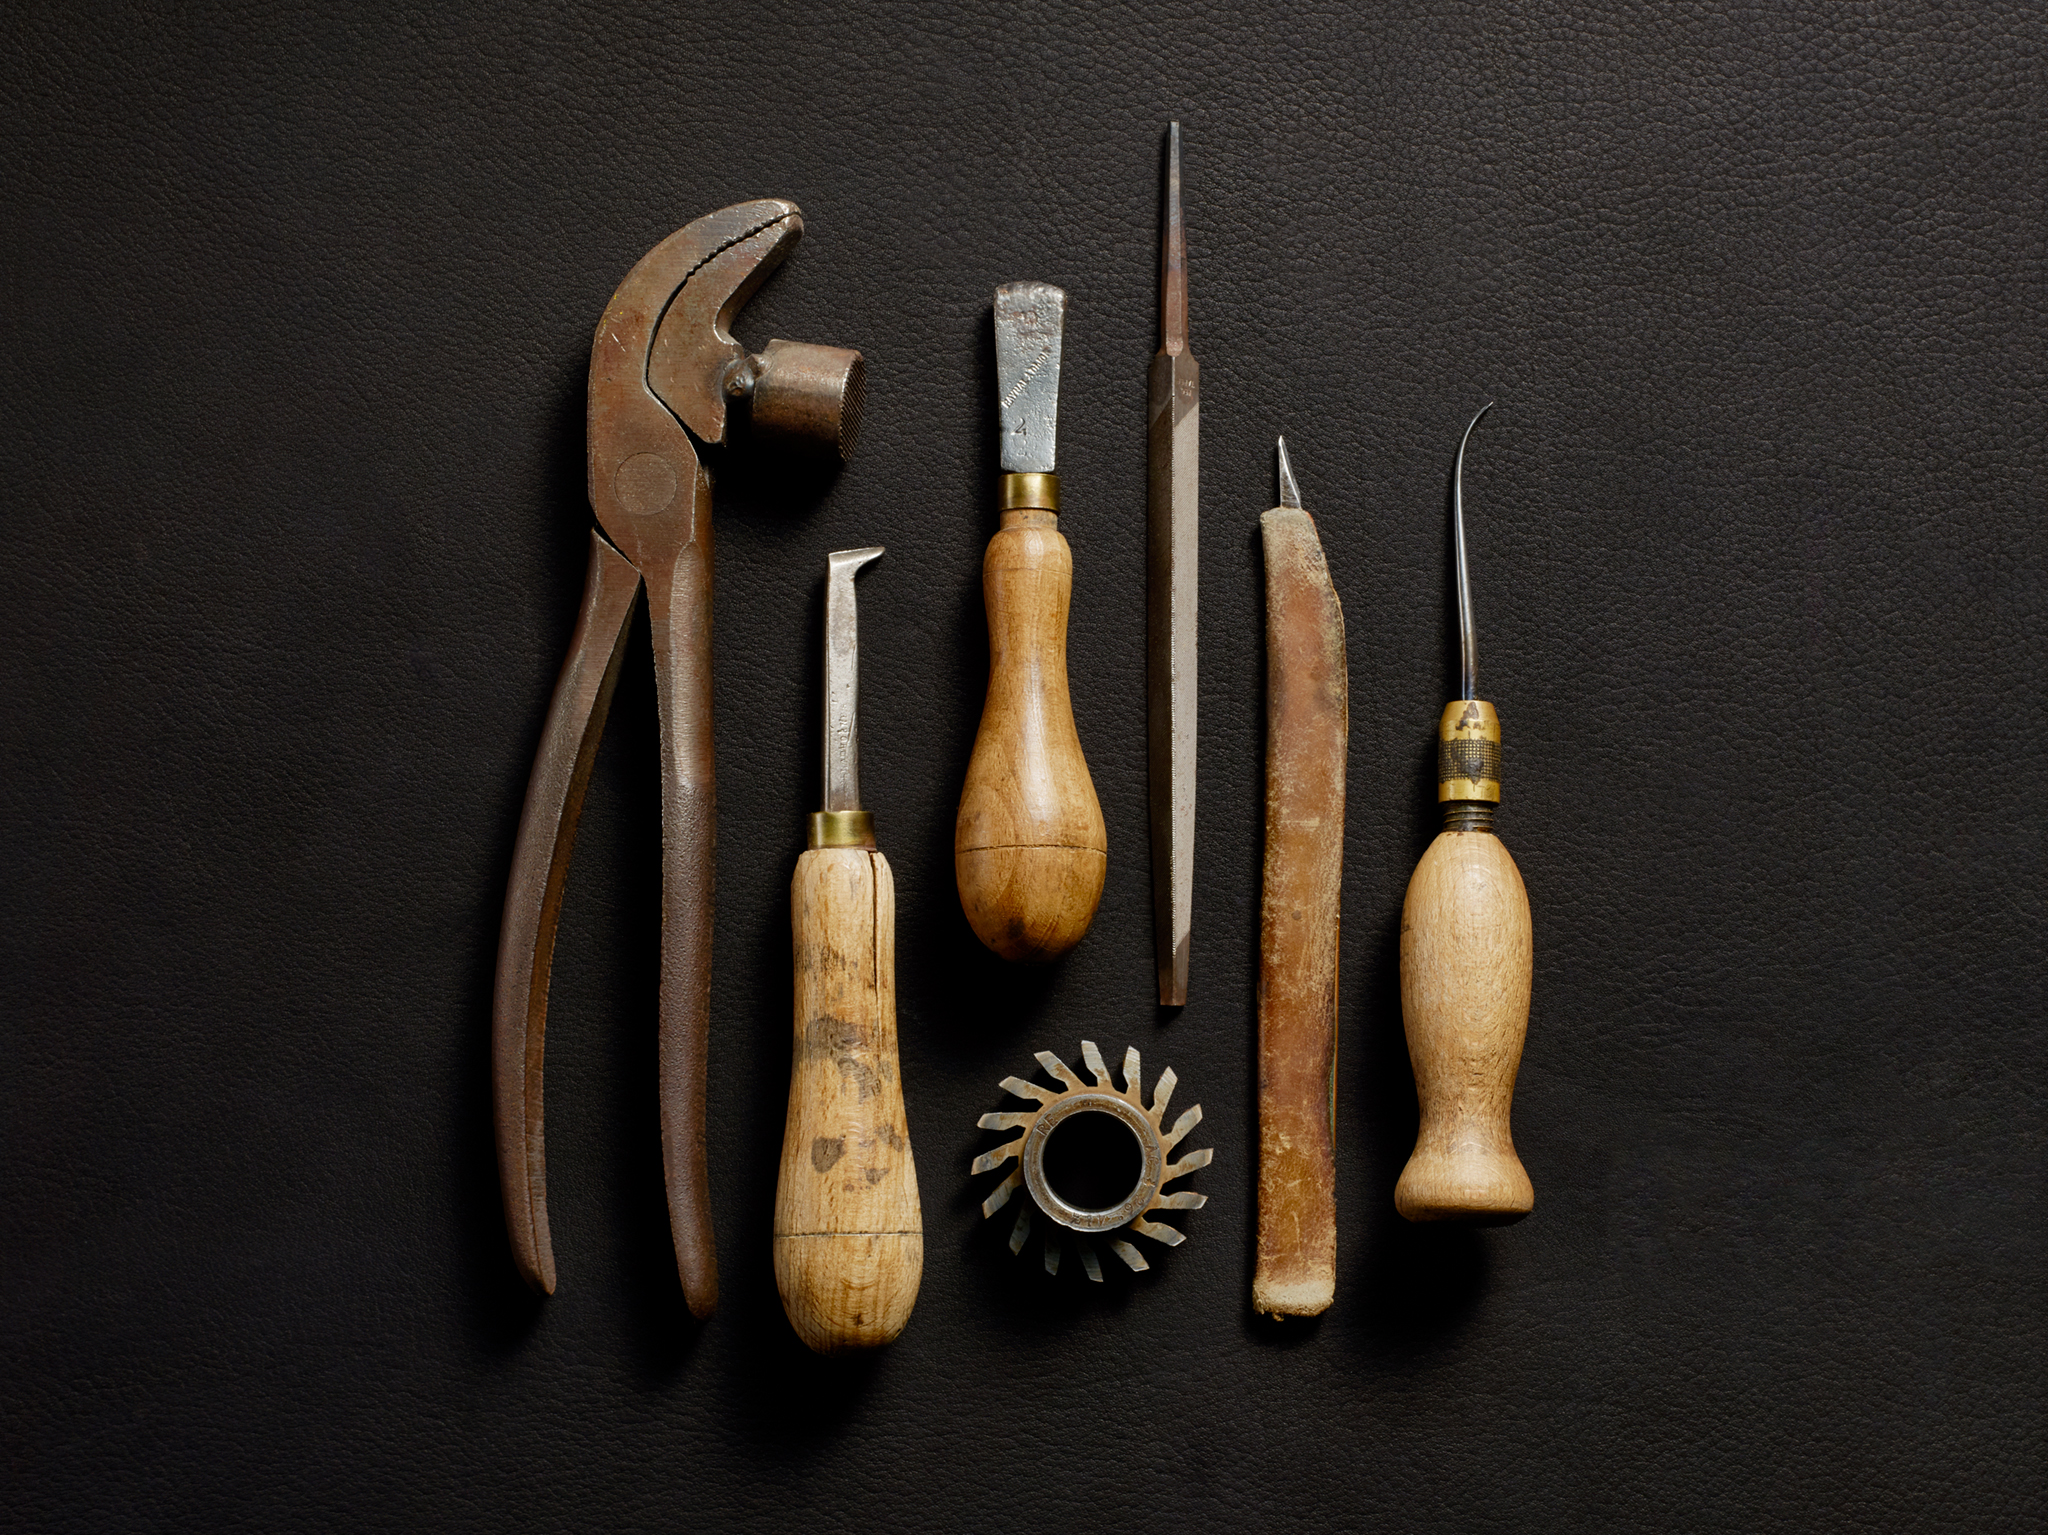 J.M. WESTON ULTRA. Manufacture française Made in France Soulier Luxe Outils Savoir-Faire